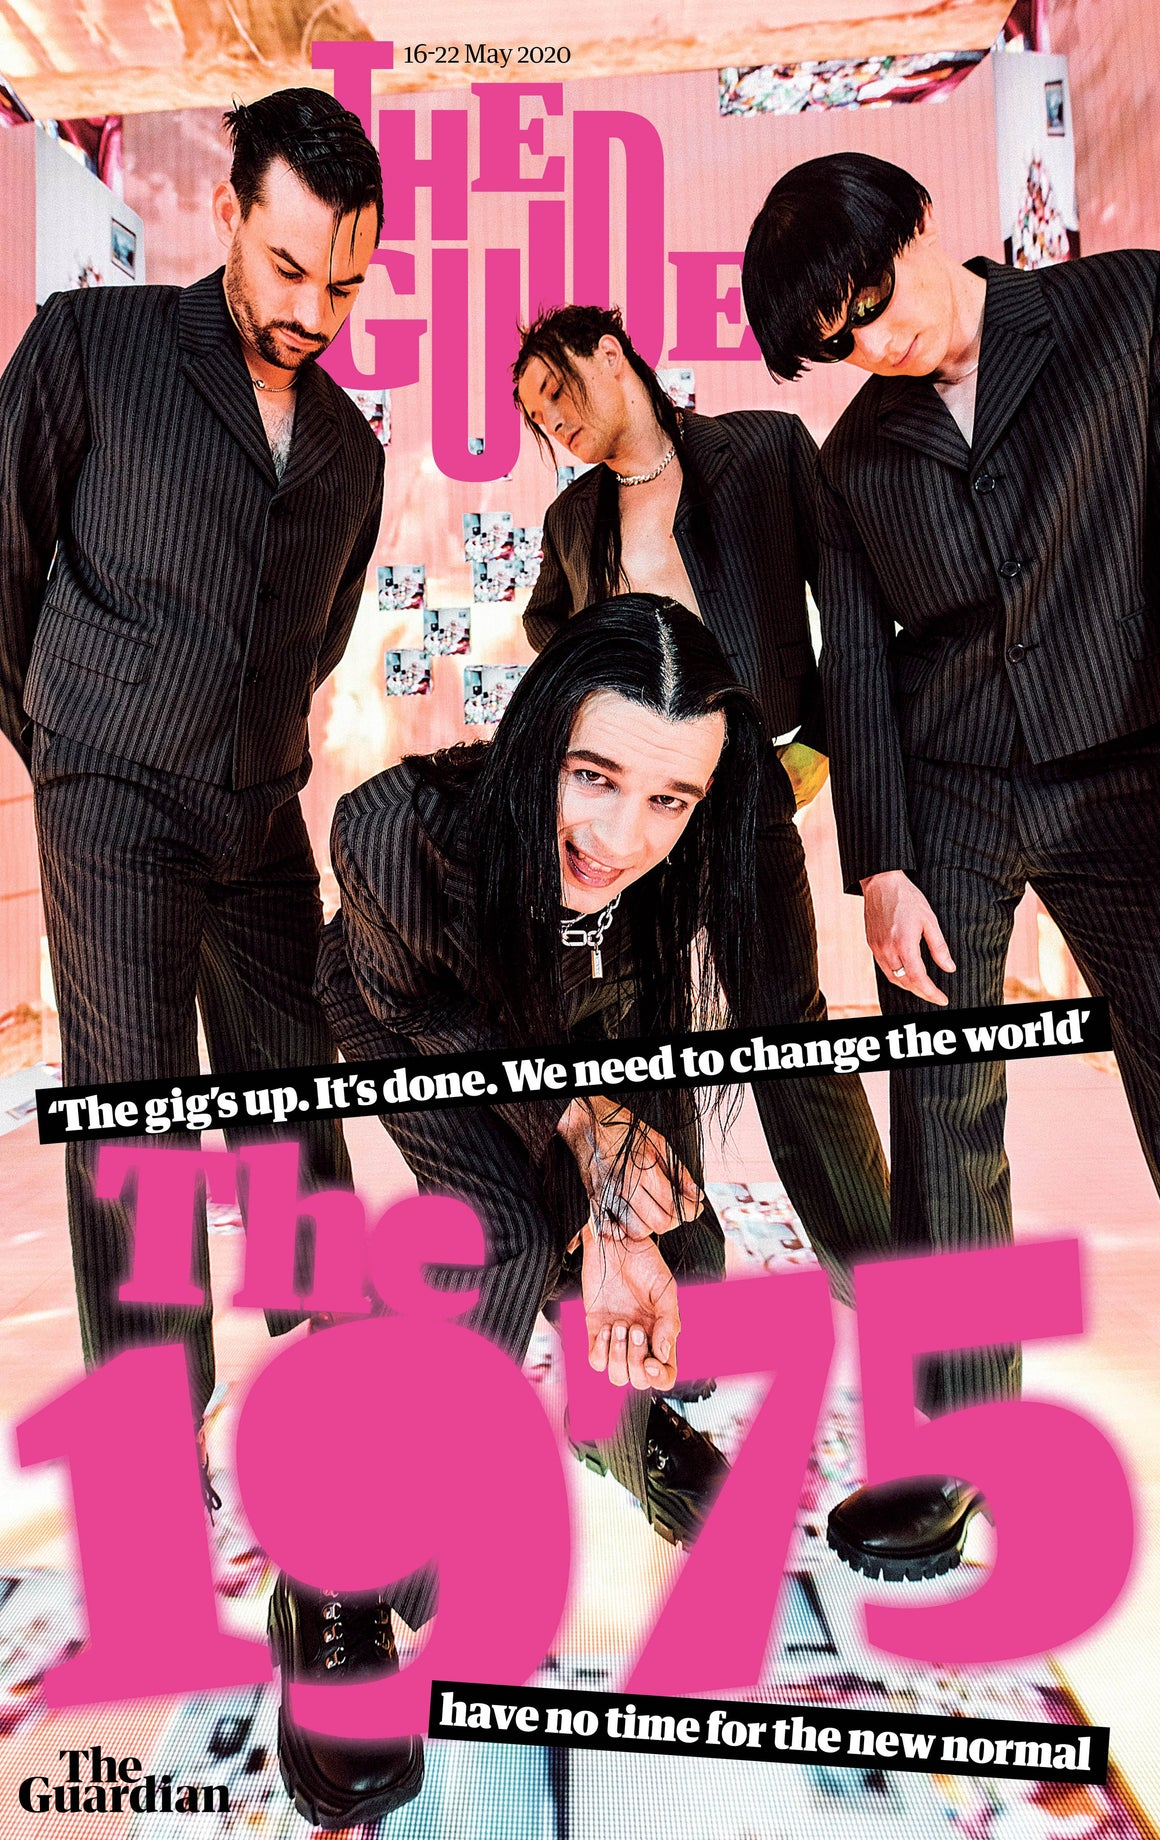 GUARDIAN GUIDE MAGAZINE - 16th May 2020: Matty Healy - The 1975